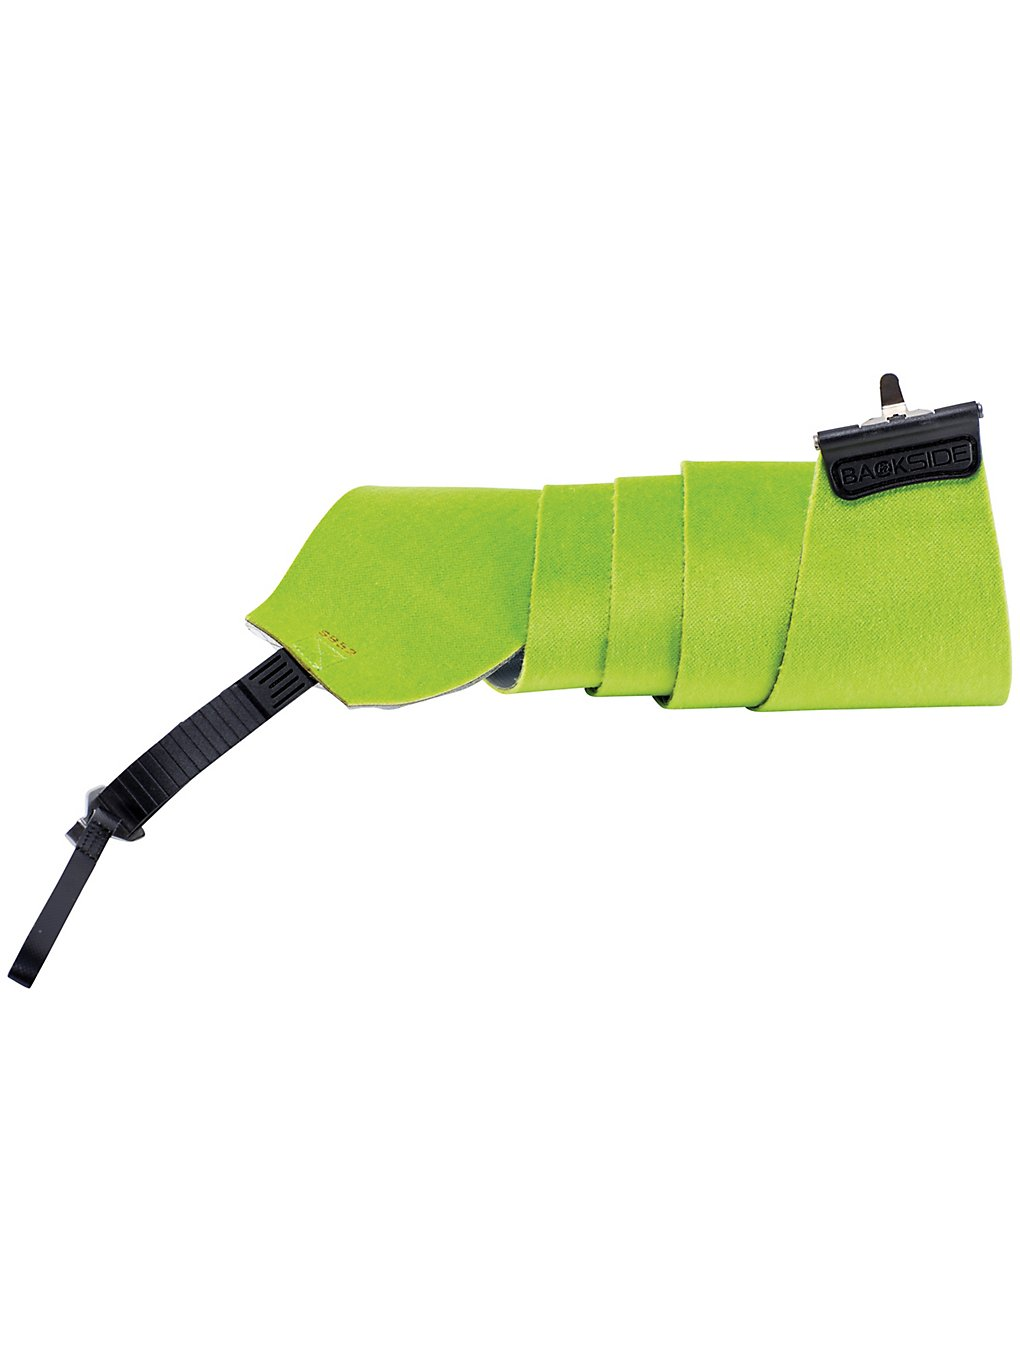 K2 152 Splitboard Skins green